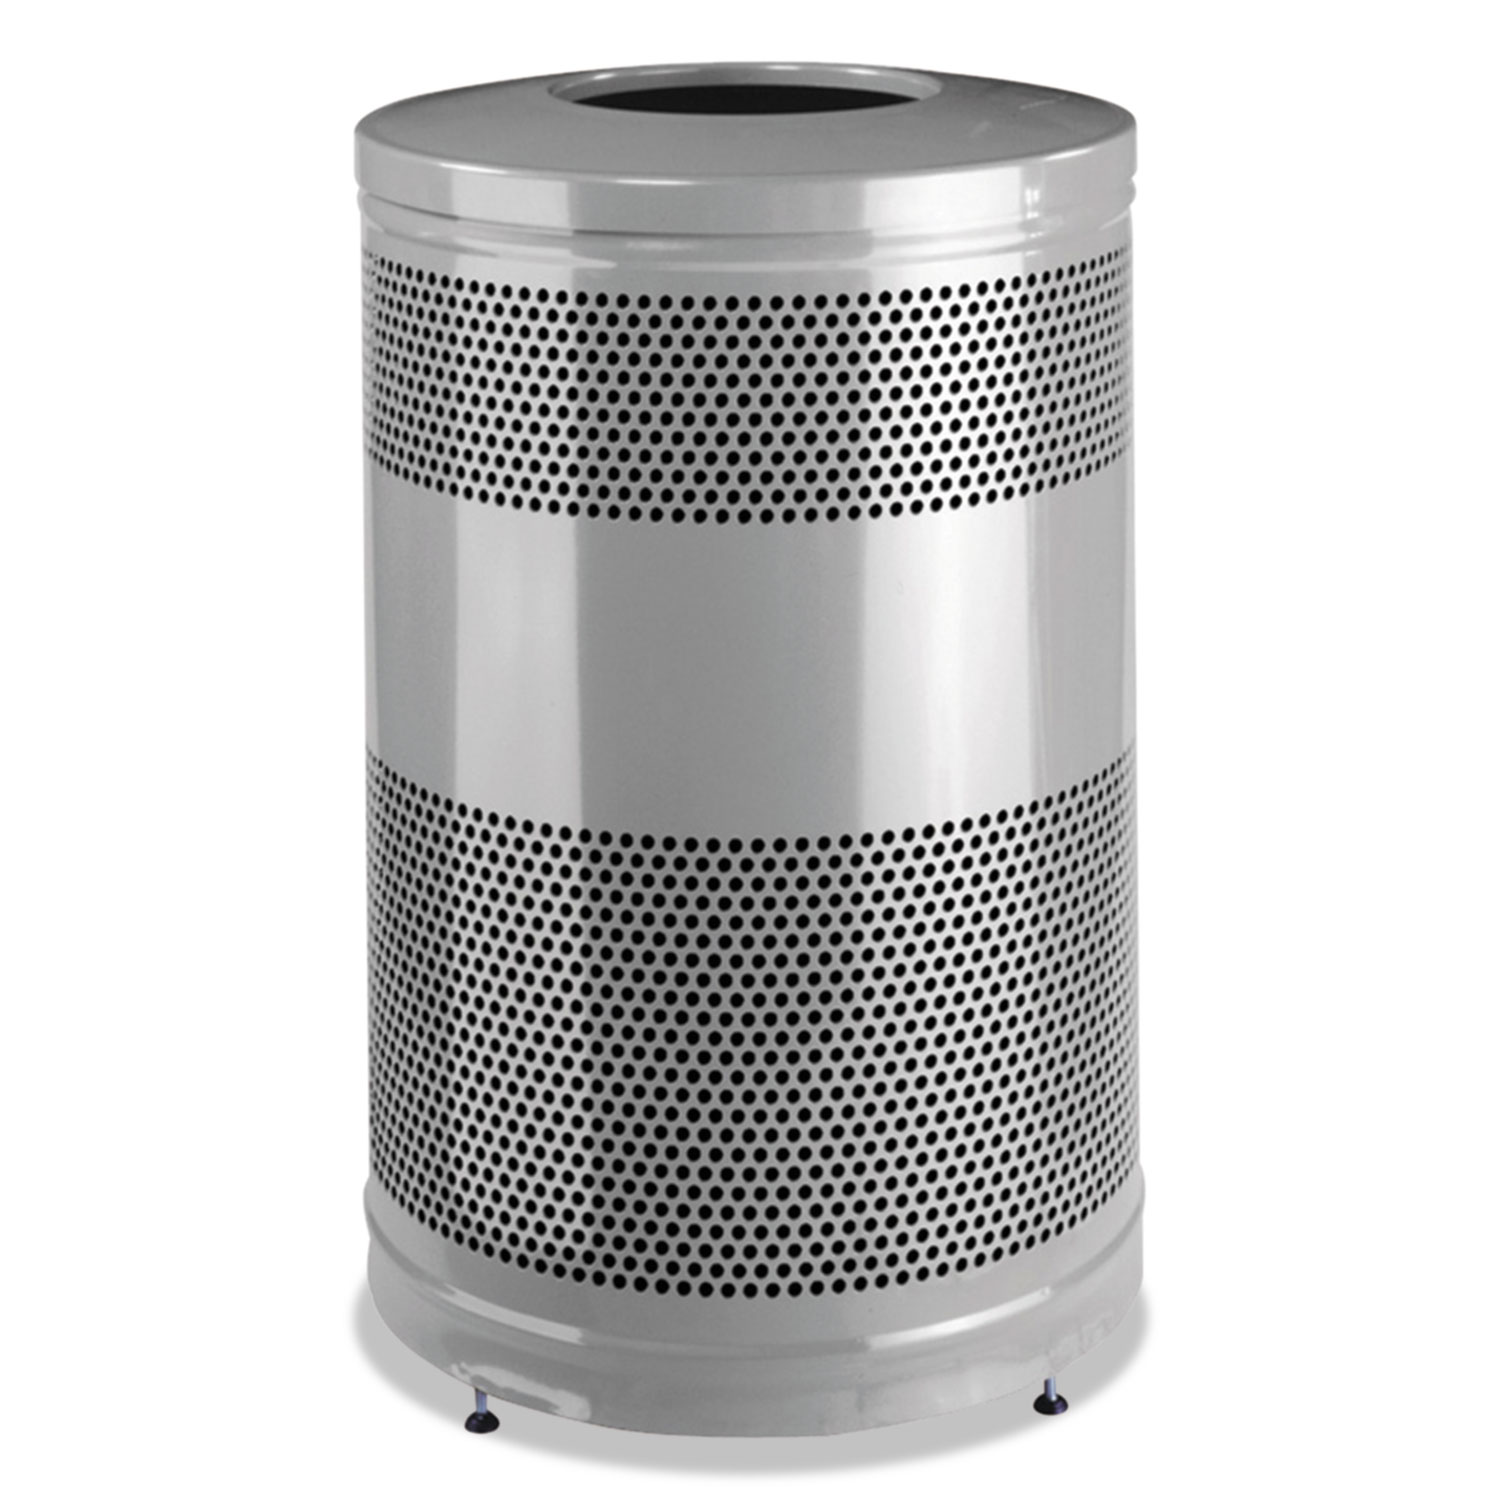 Classics Open Top Waste Receptacle, 51 gal, Stardust Silver Metallic with Black Lid